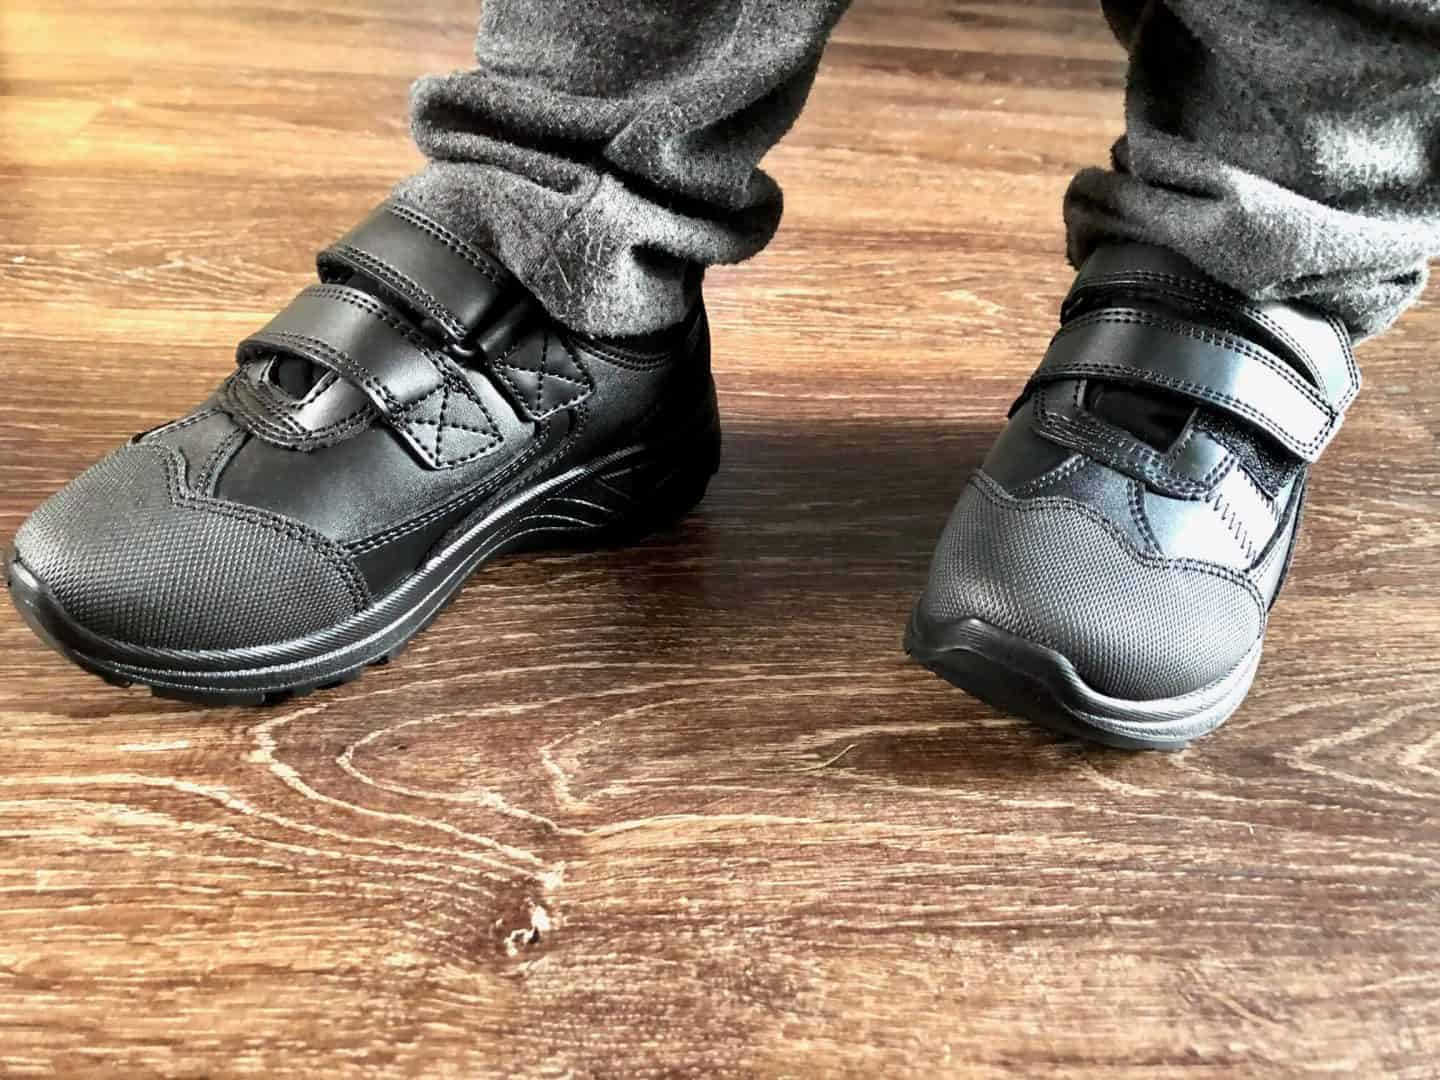 Treads Madrid School Shoes Review